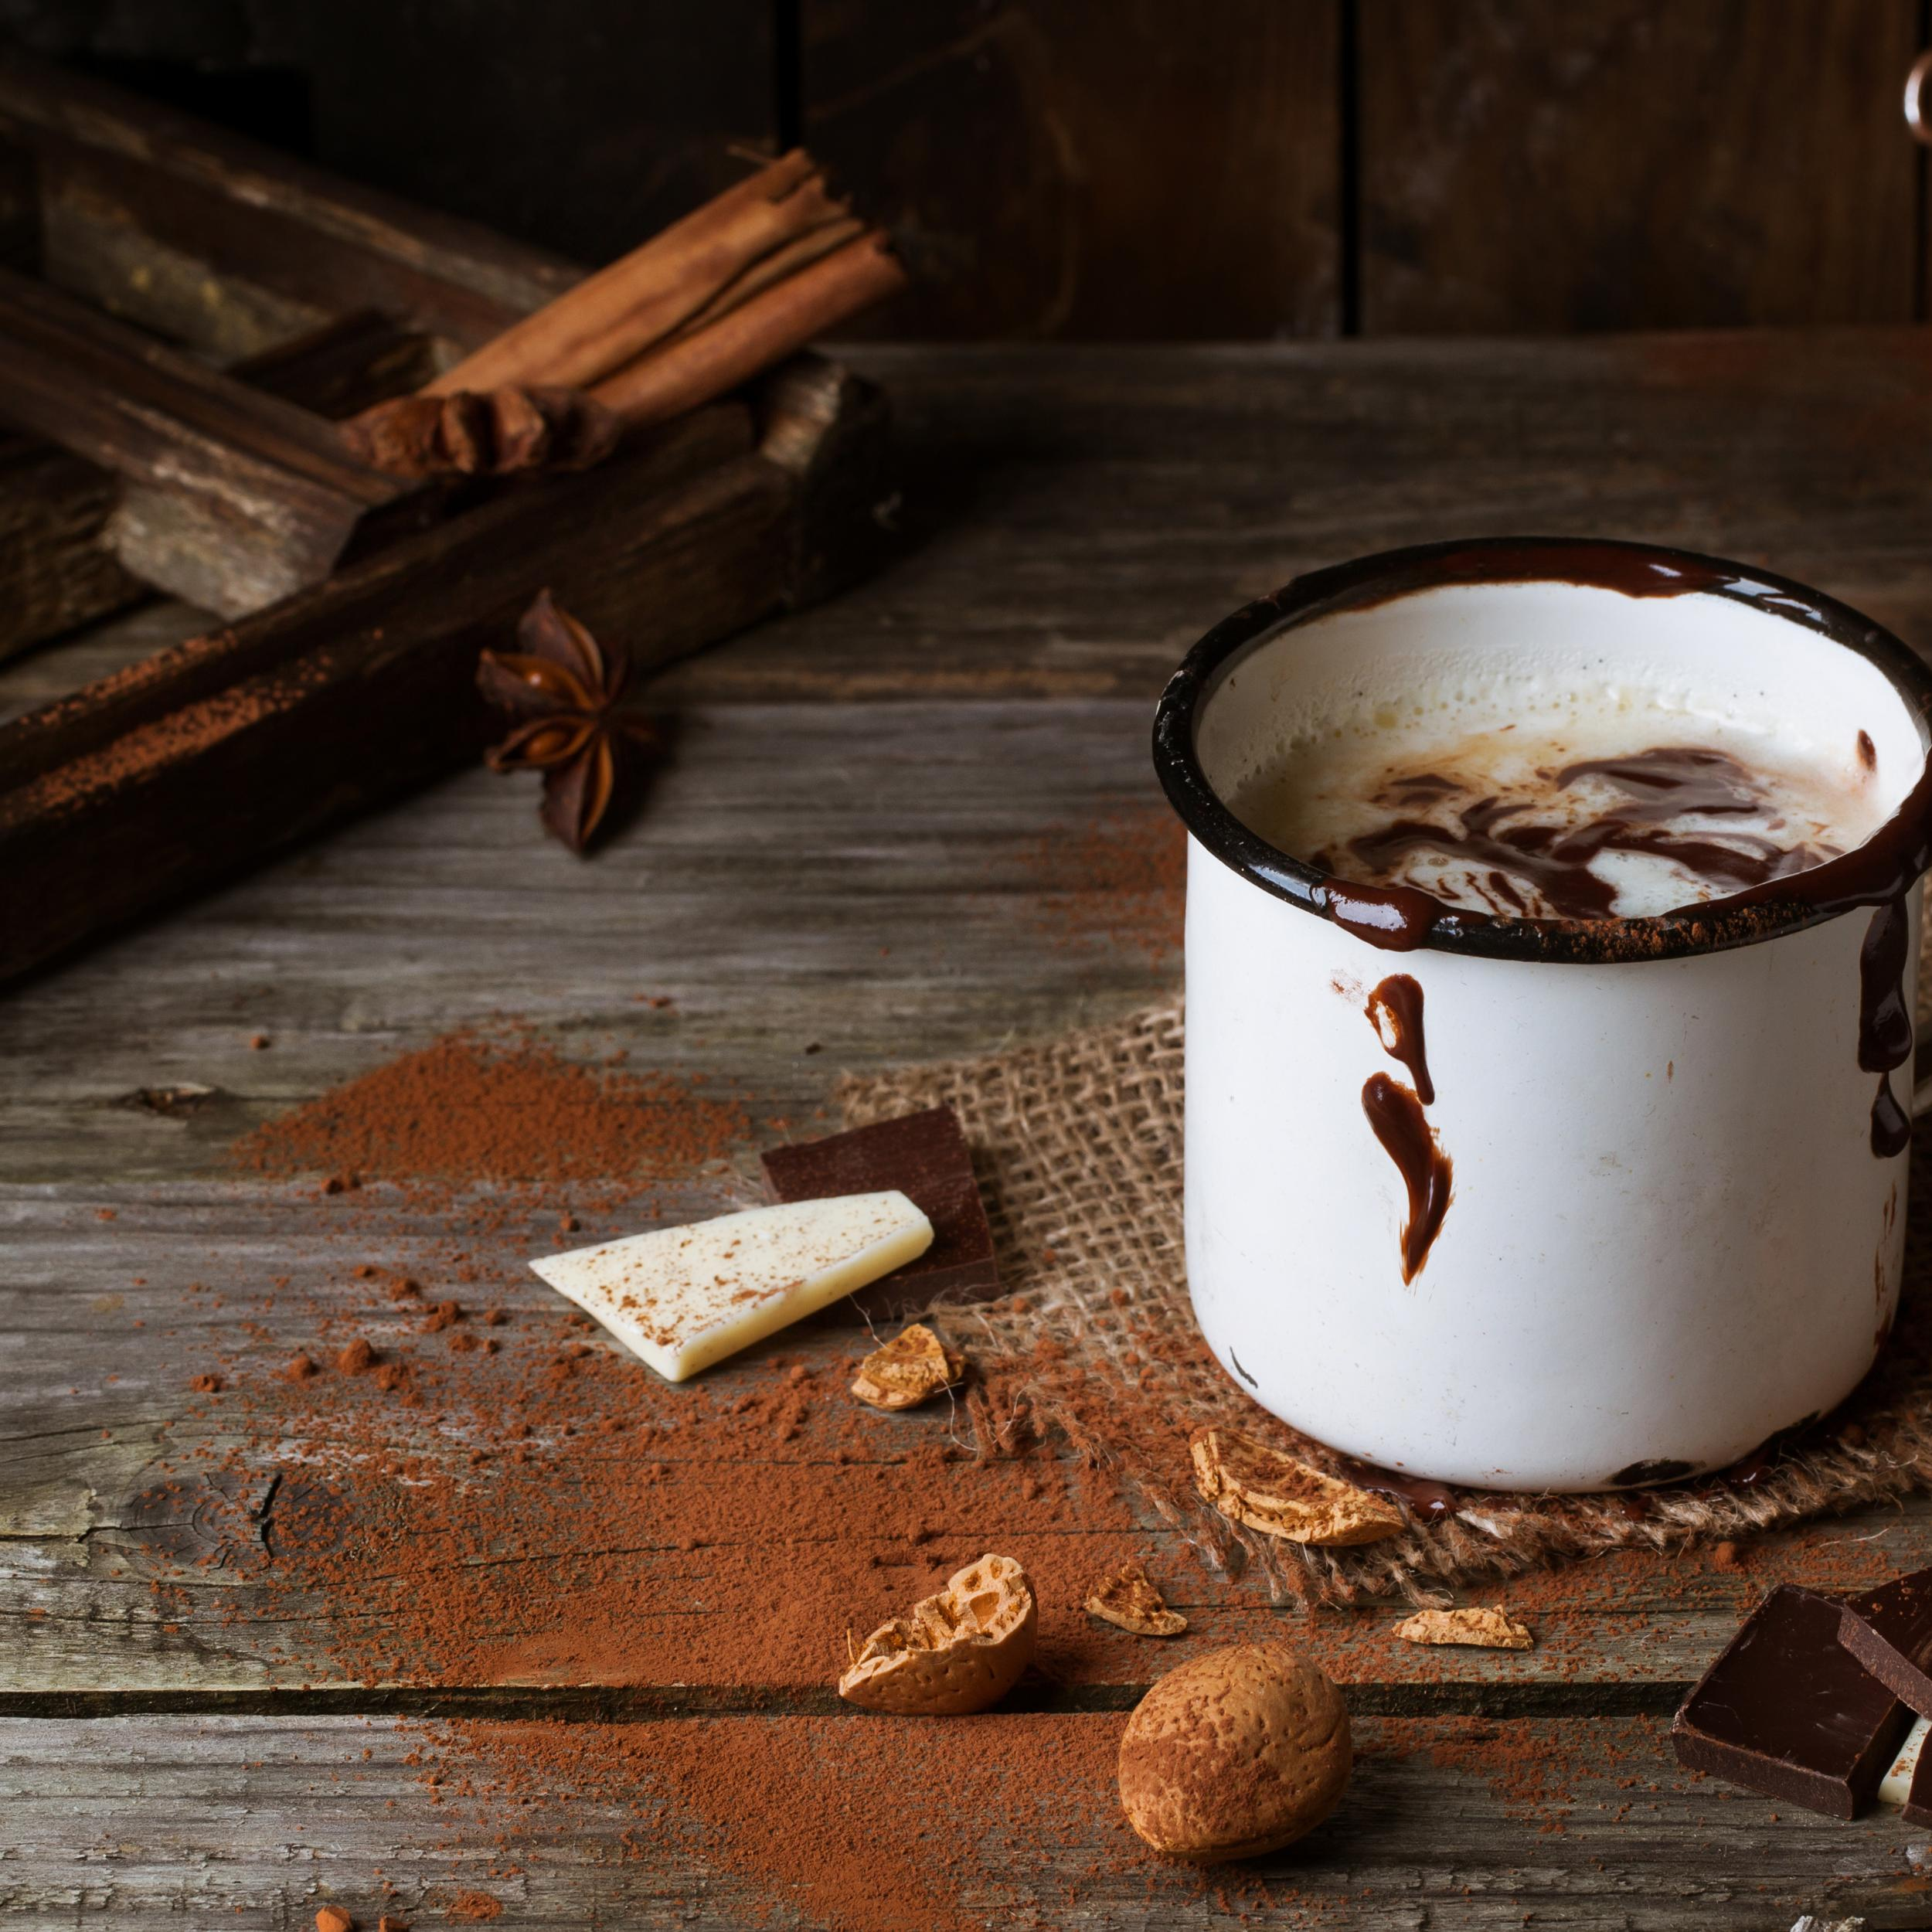 Mug with hot chocolate served with chunks of white and dark chocolate and almonds on old wooden table